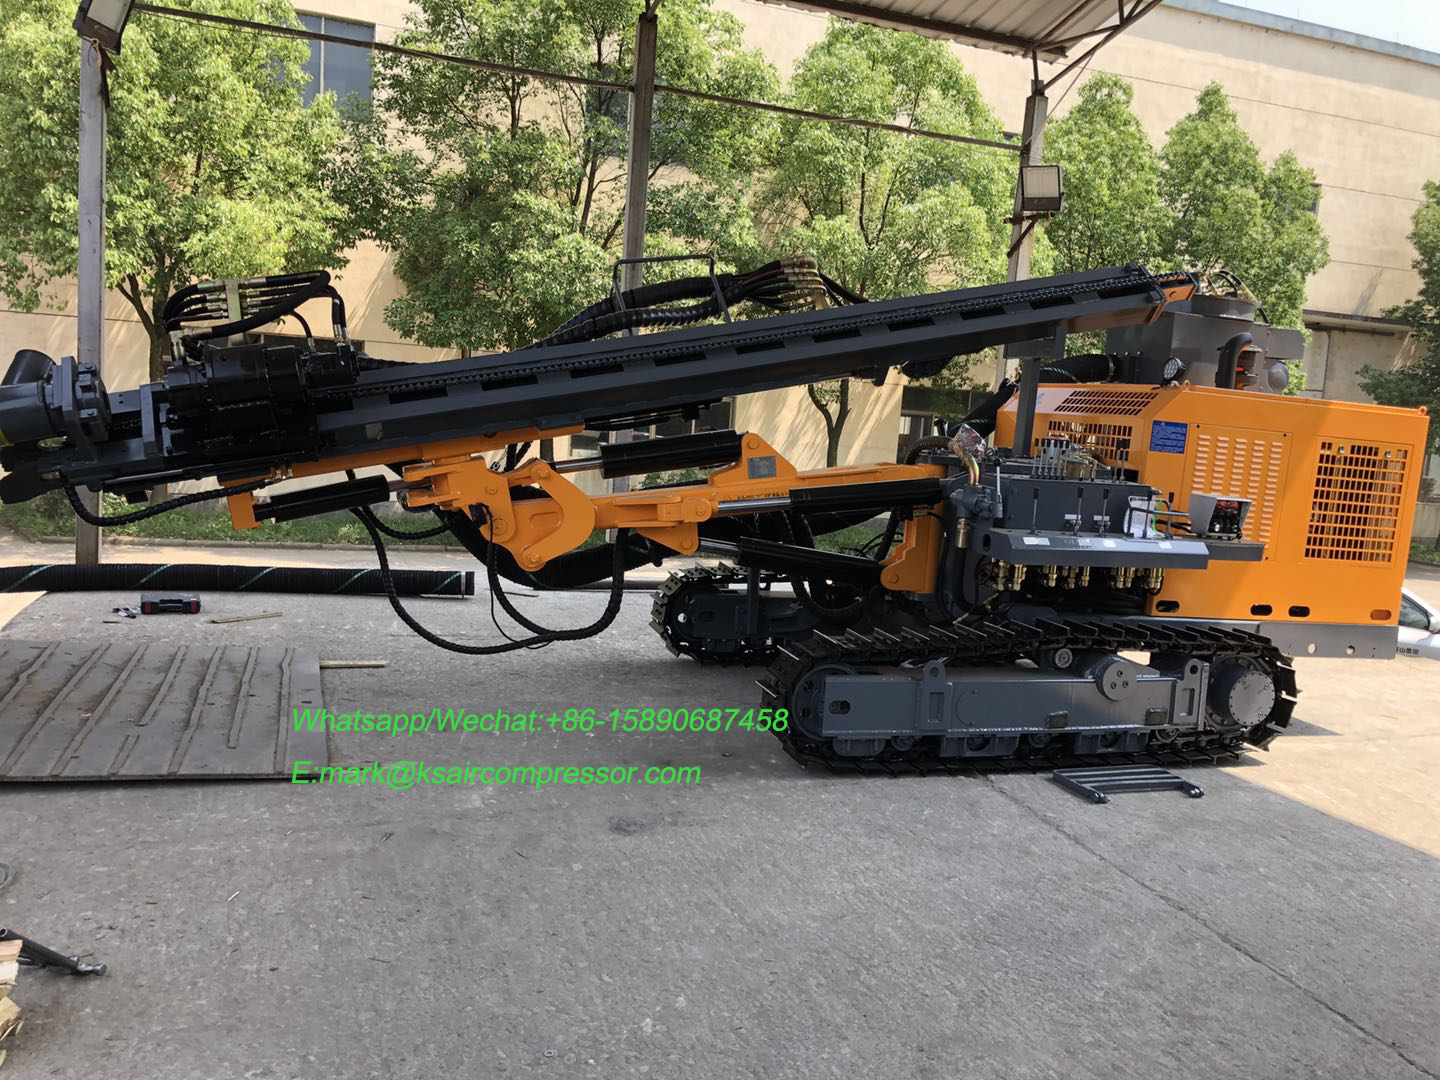 New 40m Depth KG610/KG610H Kaishan brand  Down the hole Drill Rig for Open use blast mining drilling well